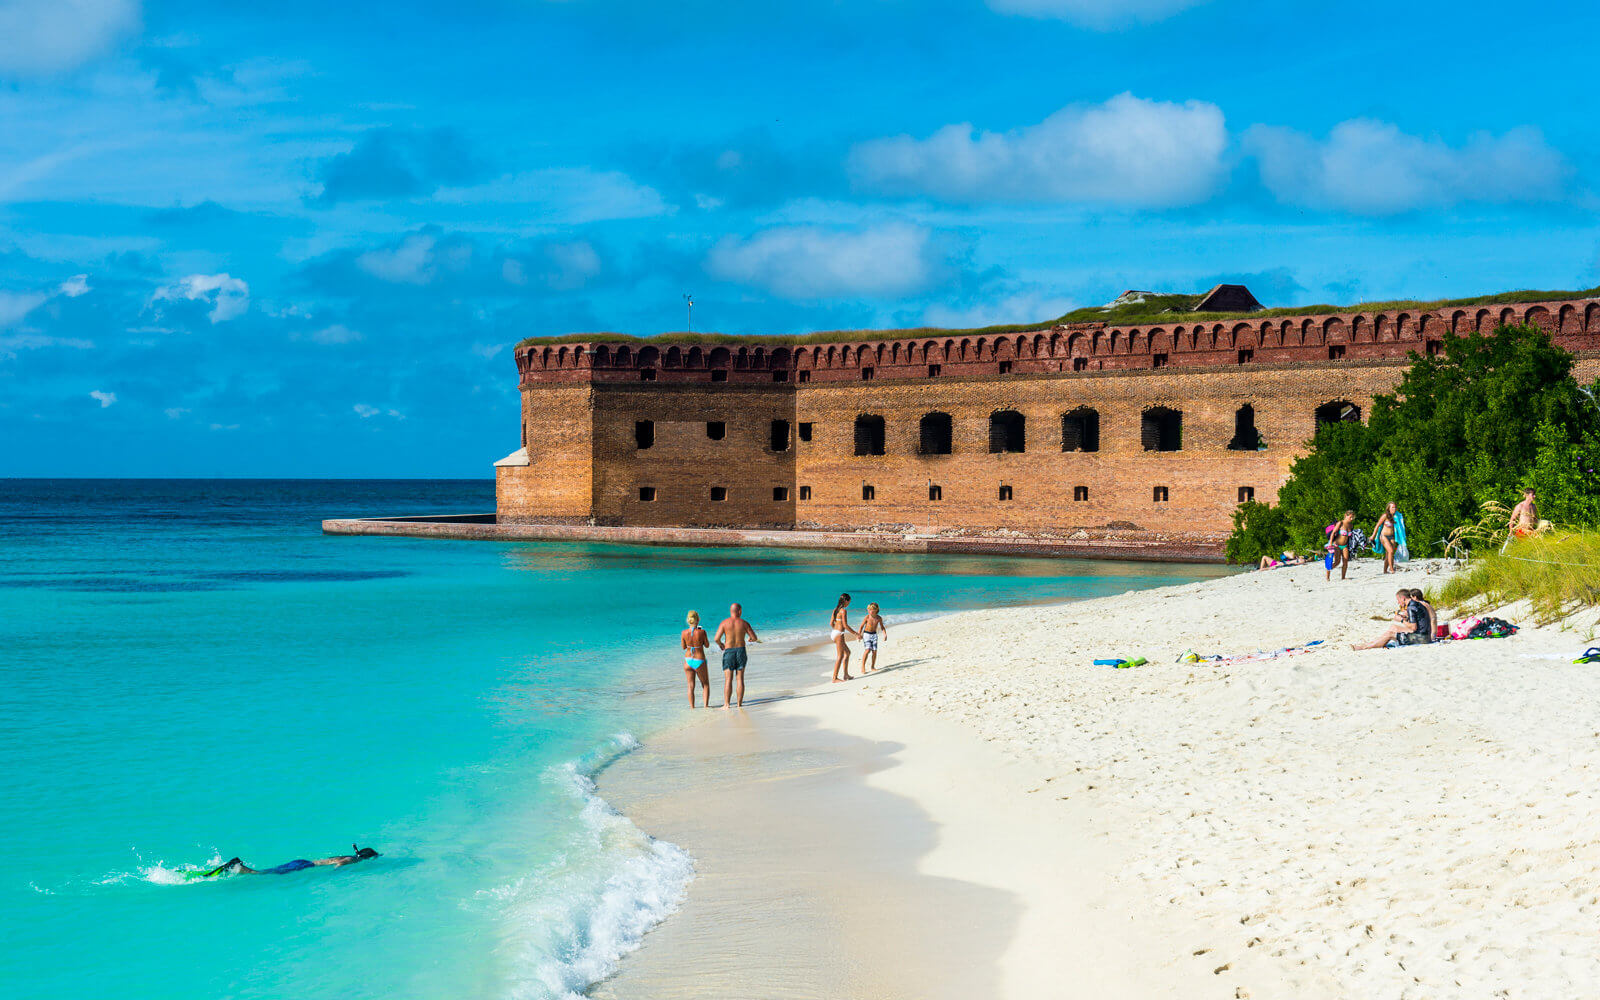 Pontos turísticos em Key West: Dry Tortugas National Park - Fort Jefferson